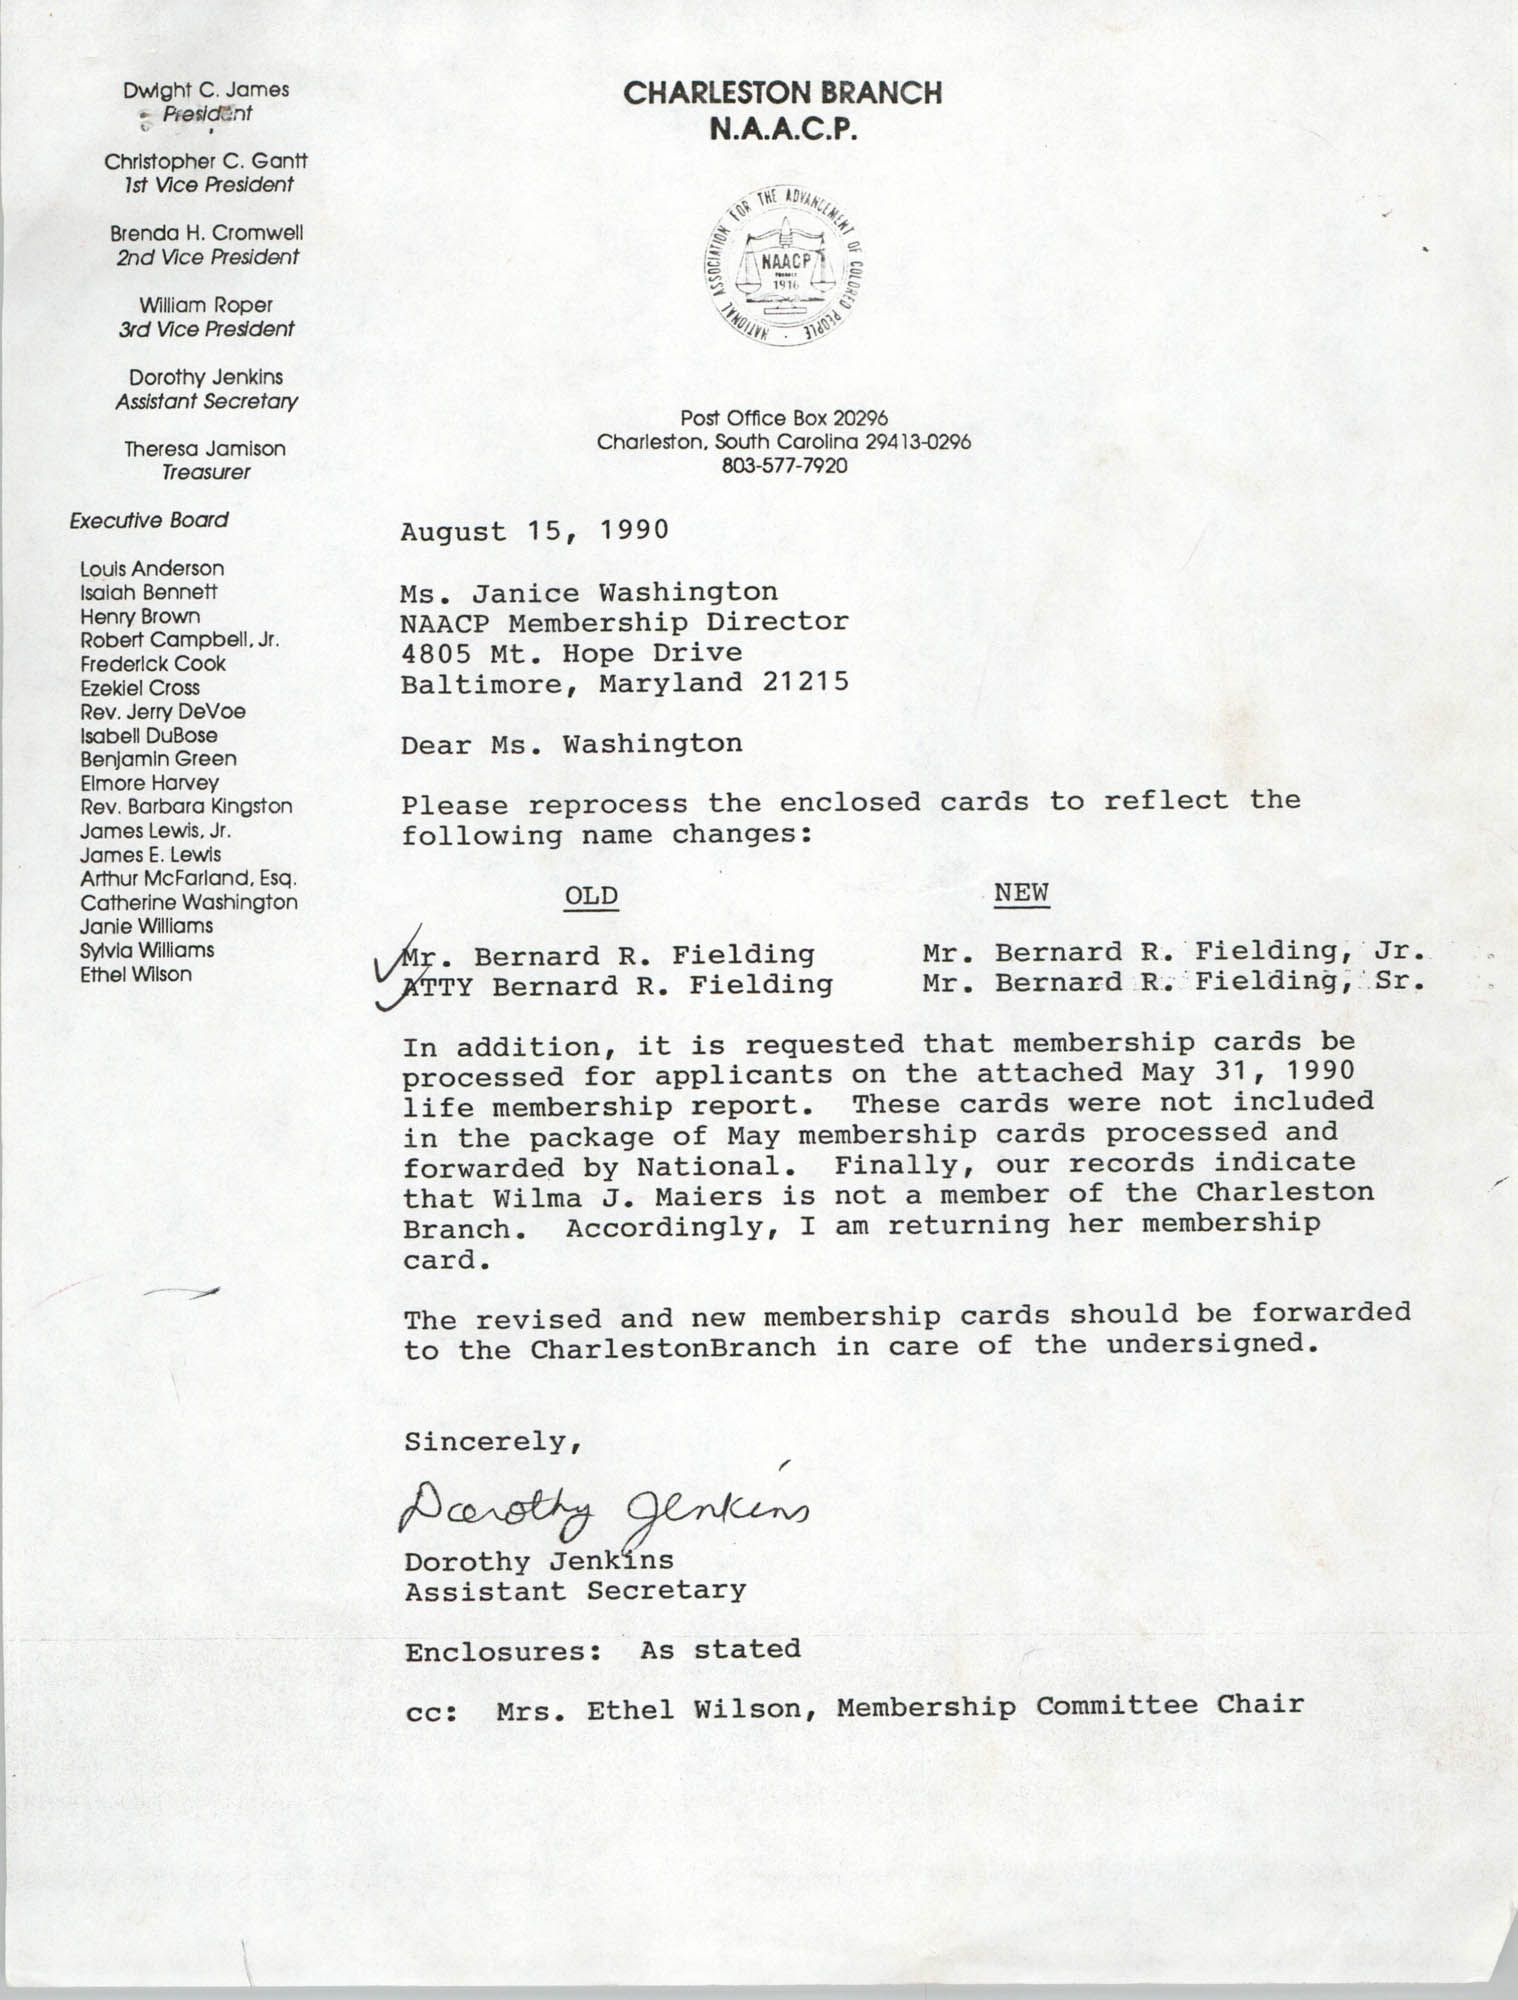 Letter from Dorothy Jenkins to Janice Washington, NAACP, August 15, 1990